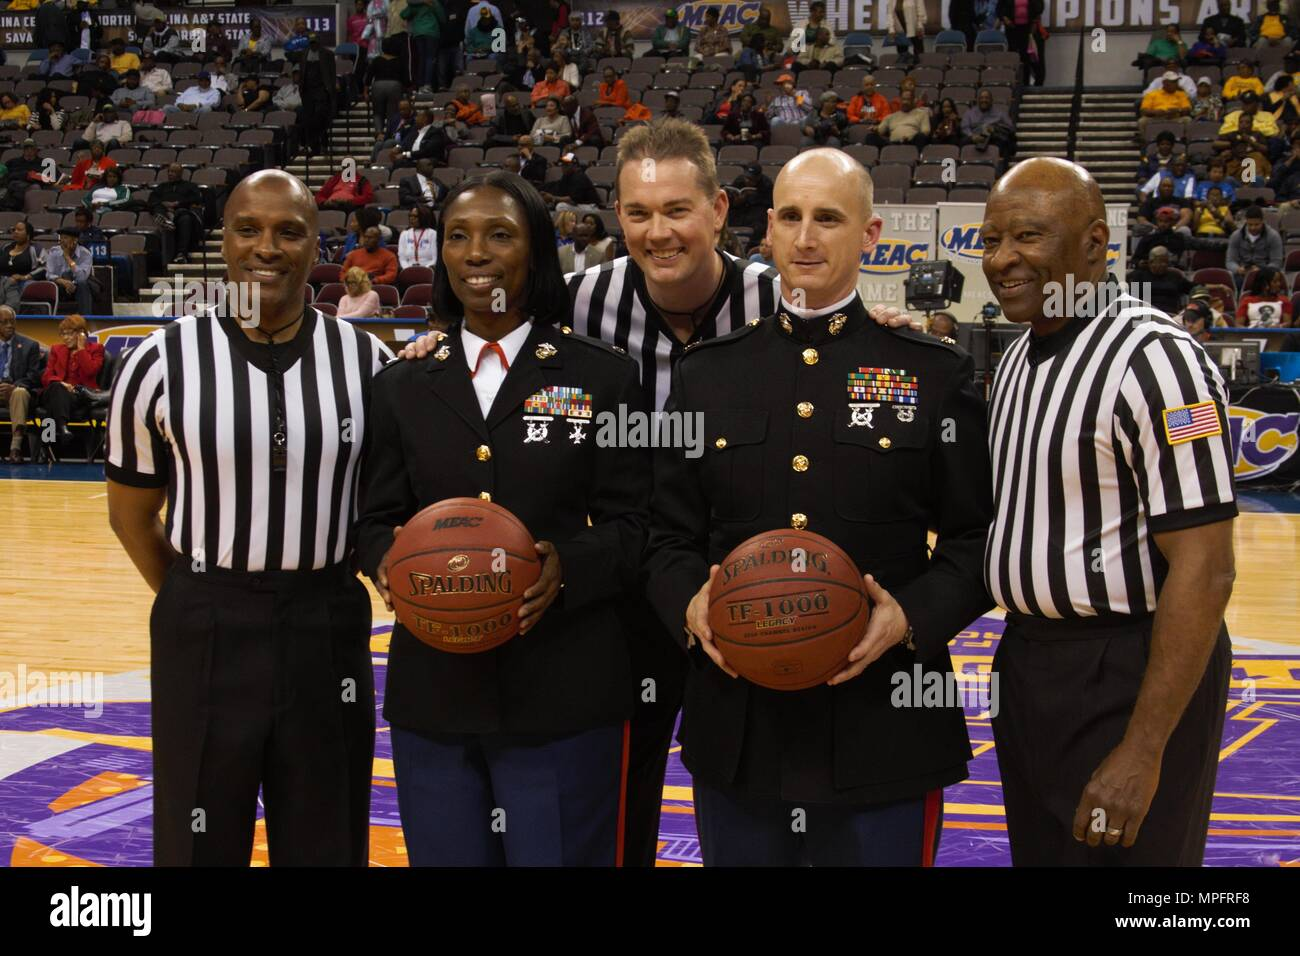 Major Charles Miller (right) and Lt. Col. Melanie Bell-Carter (left) pose for a photo with referees before tip-off at the Scope Arena in Norfolk, Virginia on March 9, 2017. The Marines were brought out to the center of the court to receive recognition for Hoops for Troops Night. The Marine Corps acknowledges this event as a valuable opportunity to spread public awareness of the Marine Corps and reinforce the idea of the armed serves as a career option within the African American community. Miller currently serves as the commanding officer of recruiting station Richmond and Bell-Carter currentl - Stock Image